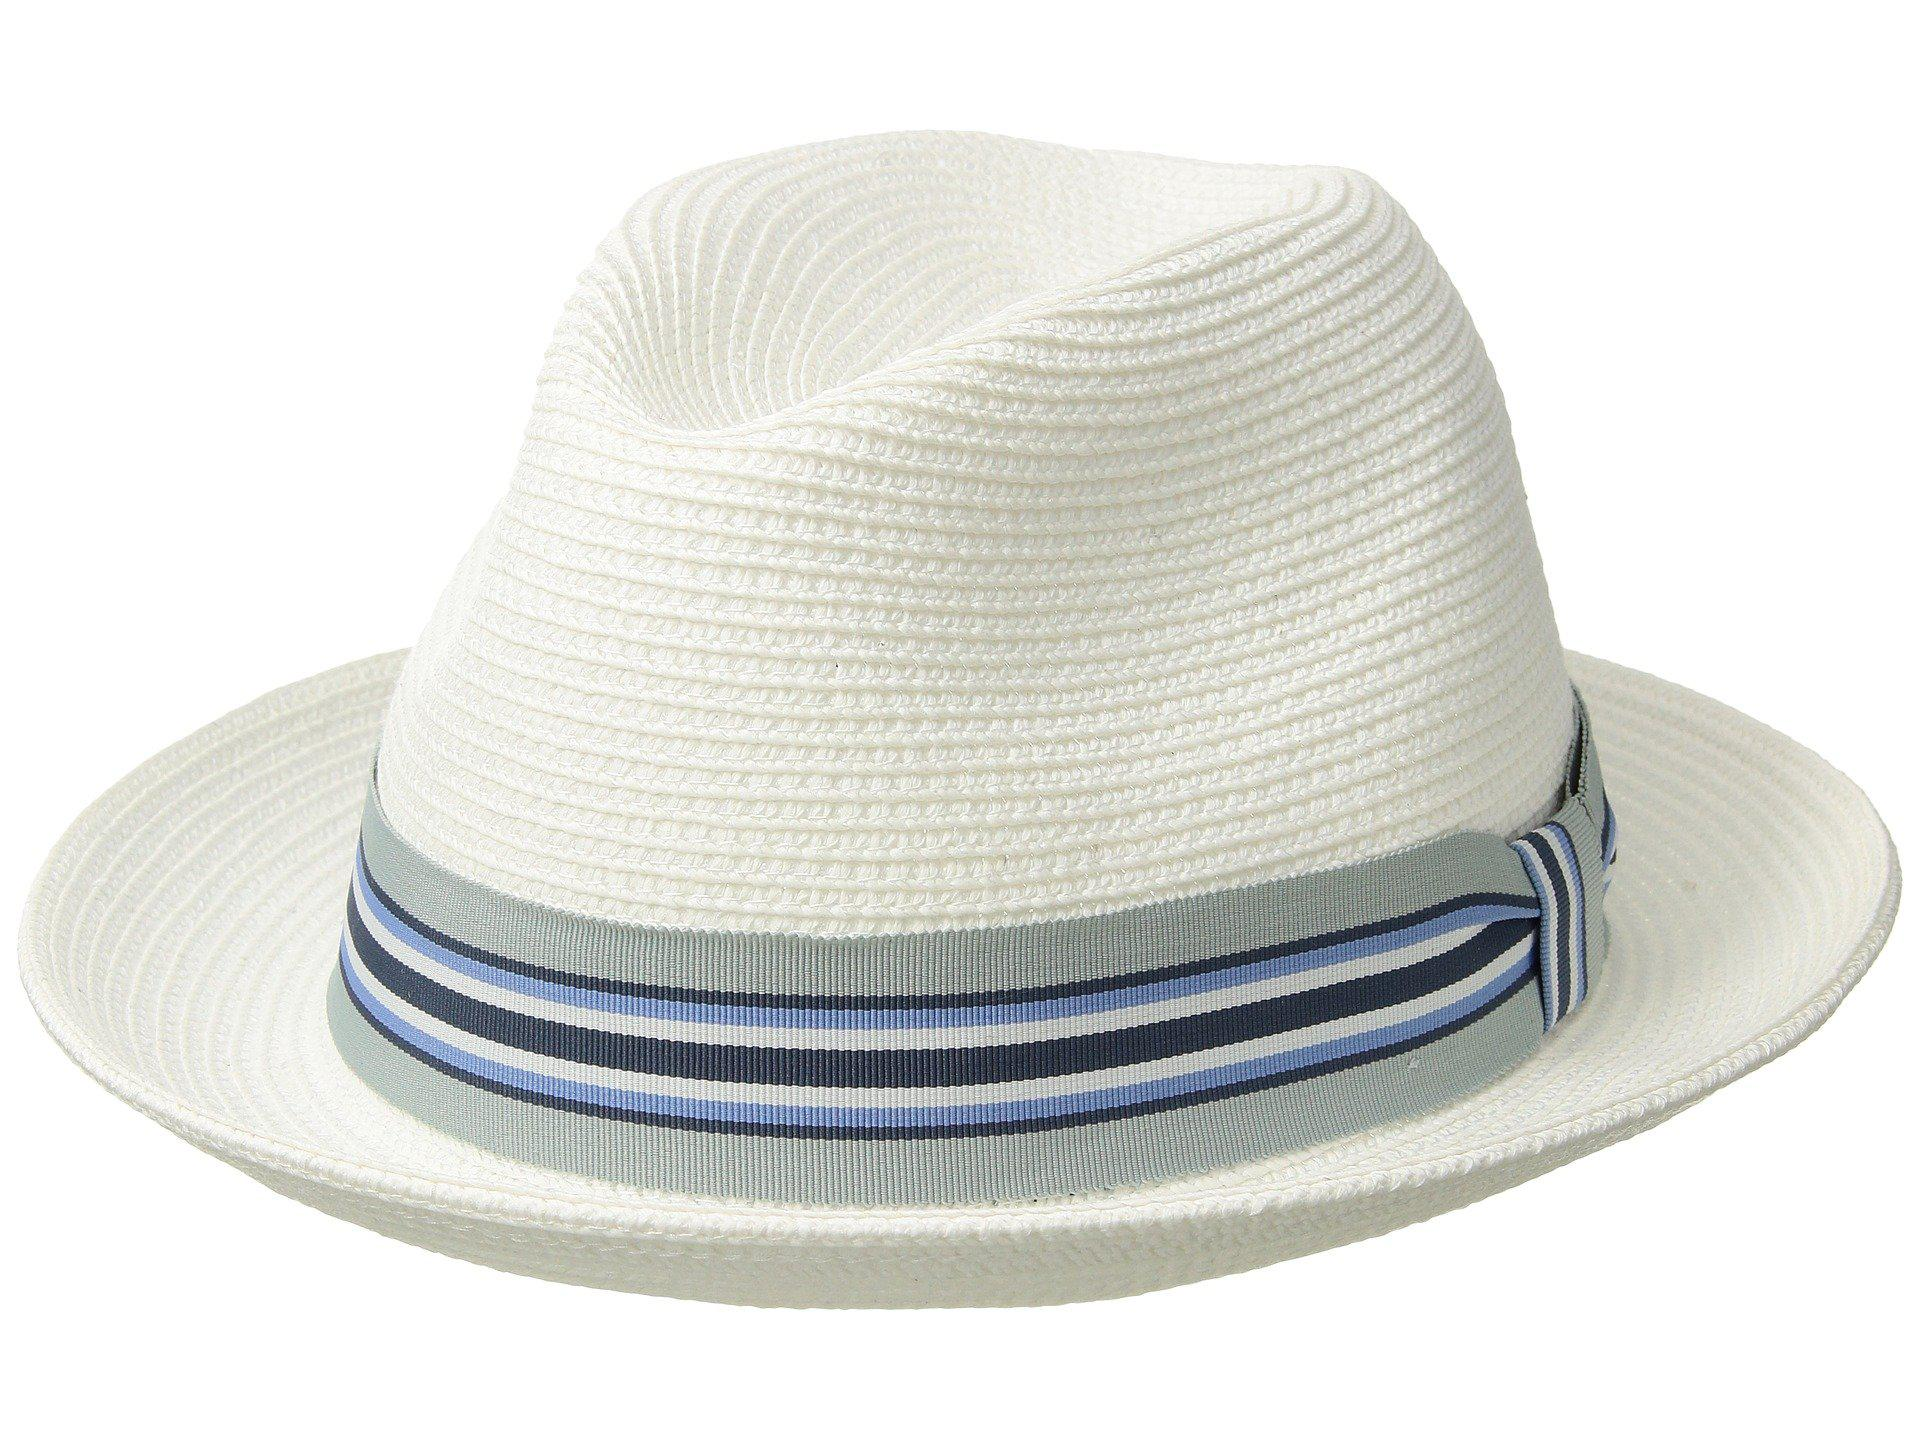 Lyst - Bailey of Hollywood Salem (driftwood) Caps in White for Men 5c21ca598d05